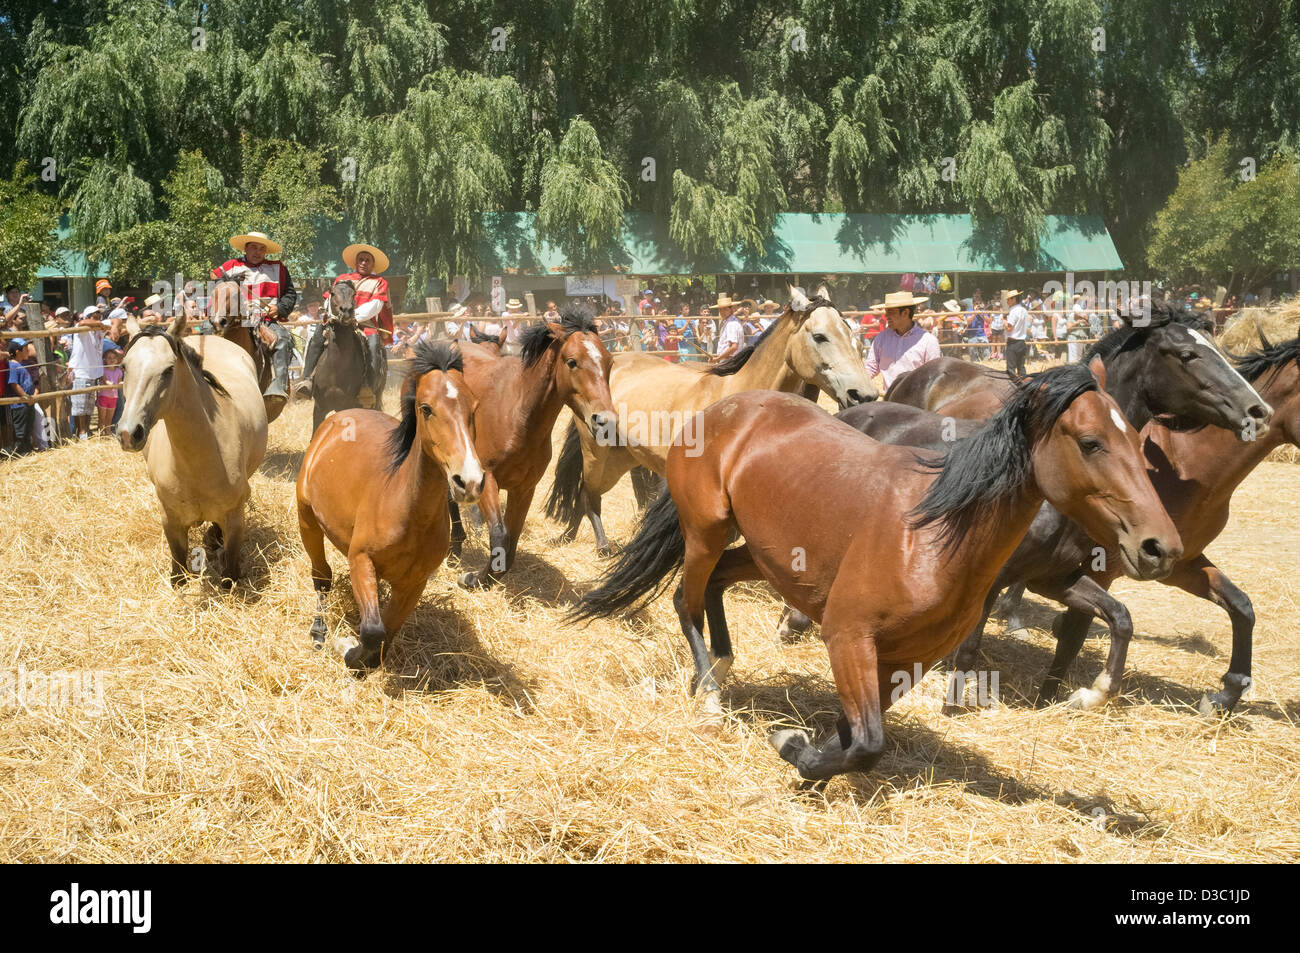 traditional festival of the Chilean countryside, threshing with horses - Stock Image